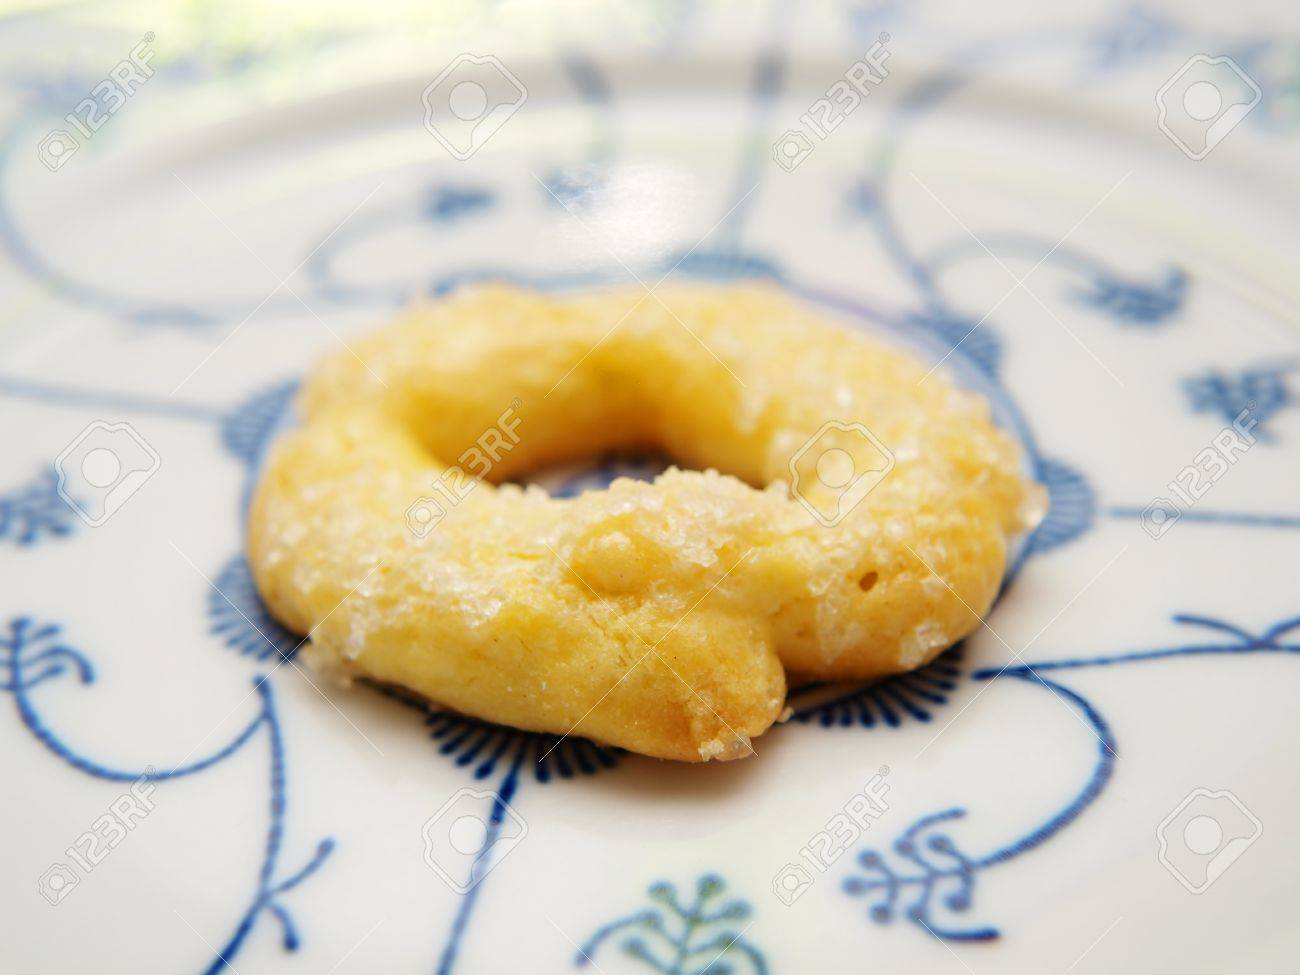 Berlinerkrans Old Norwegian Christmas Cookie Tradition Isolated